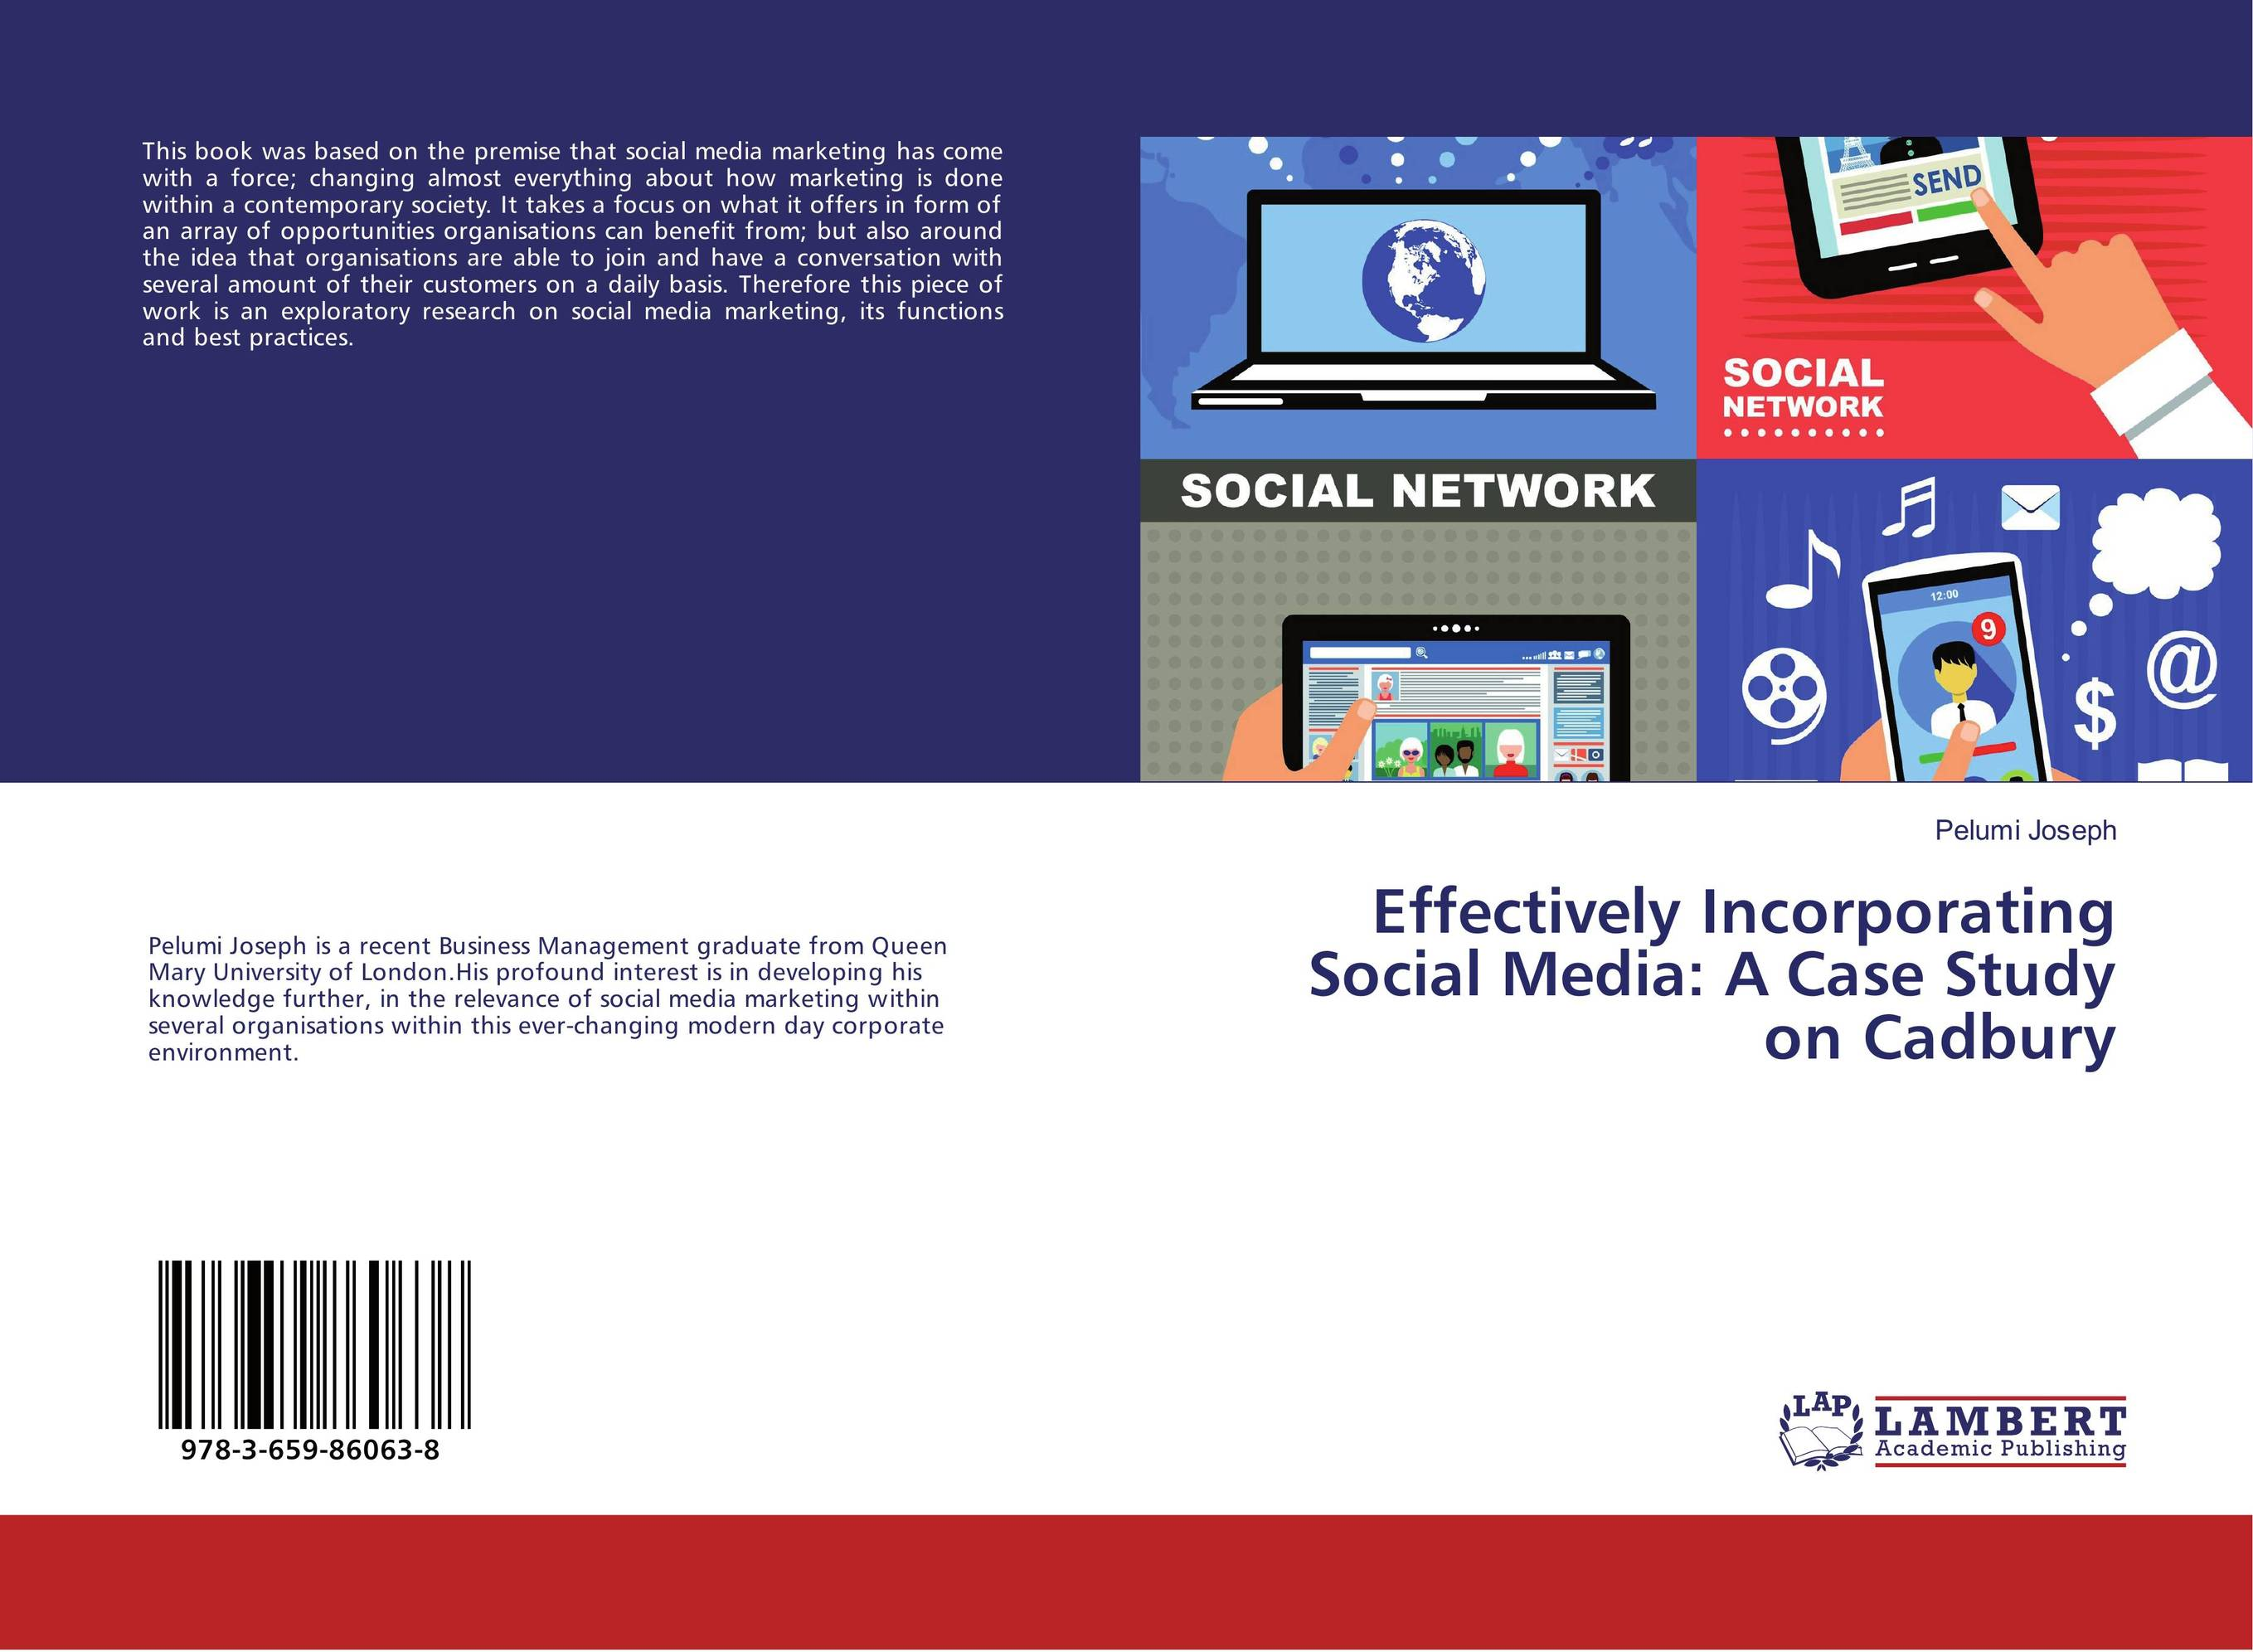 Effectively Incorporating Social Media: A Case Study on Cadbury